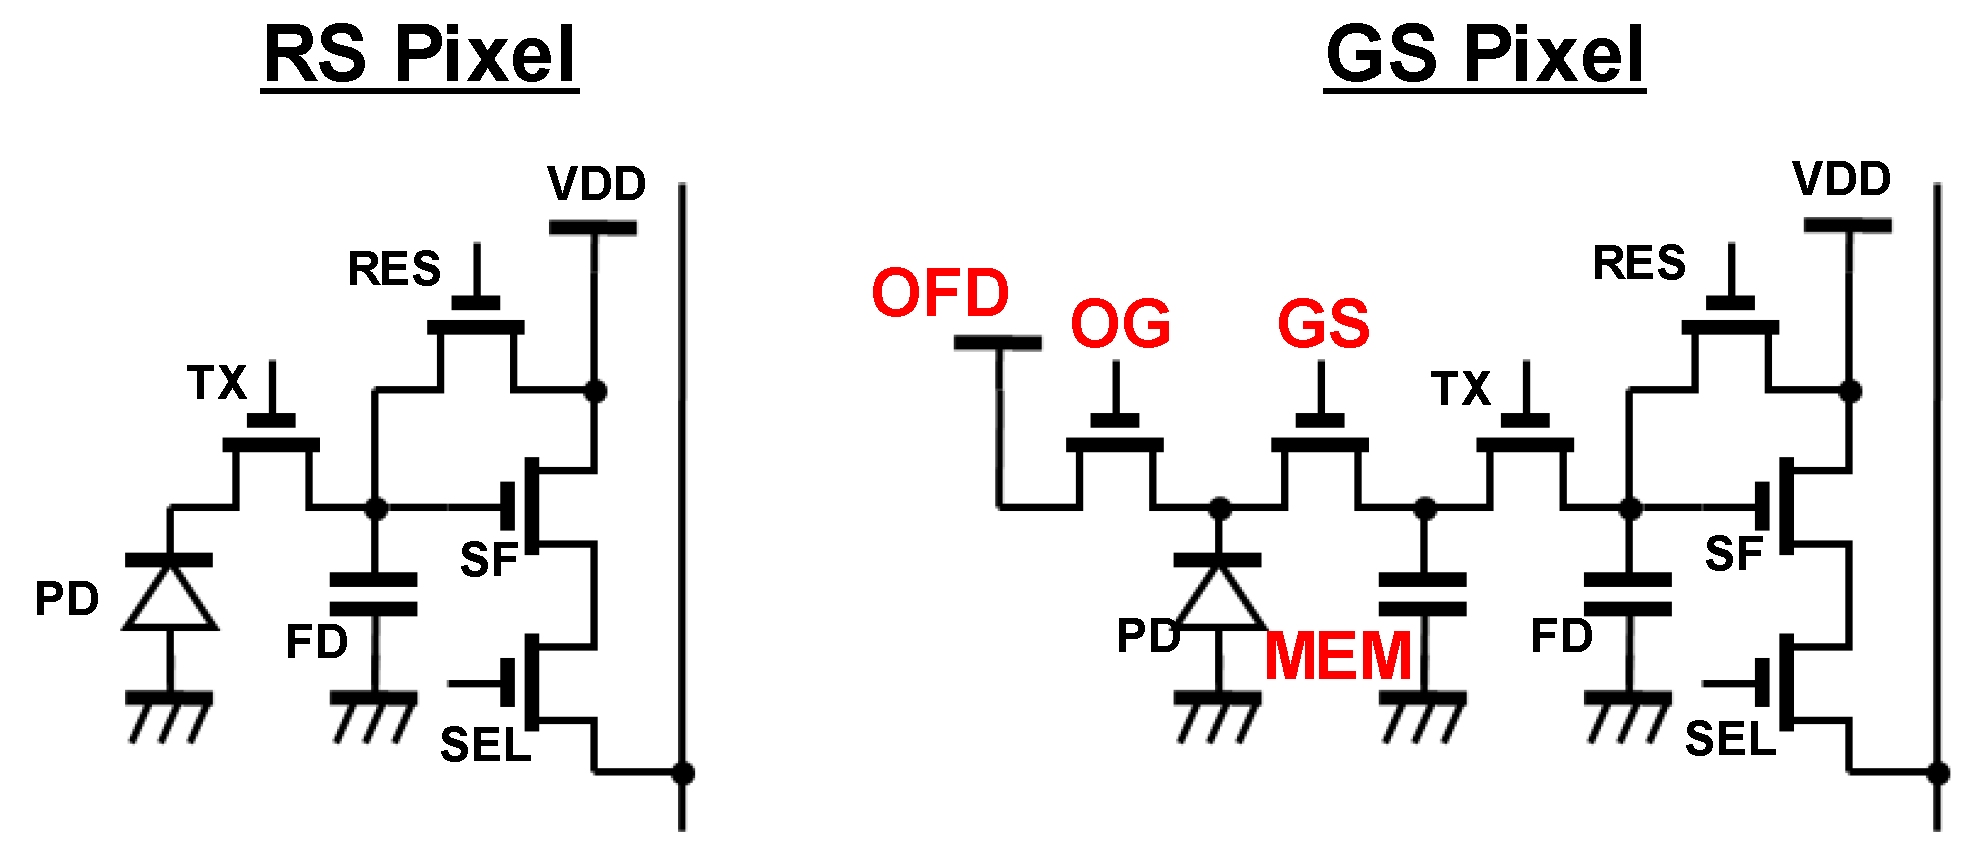 research papers on vlsi The robust low power vlsi group, led by professor ben calhoun, investigates research topics related to modern vlsi design.